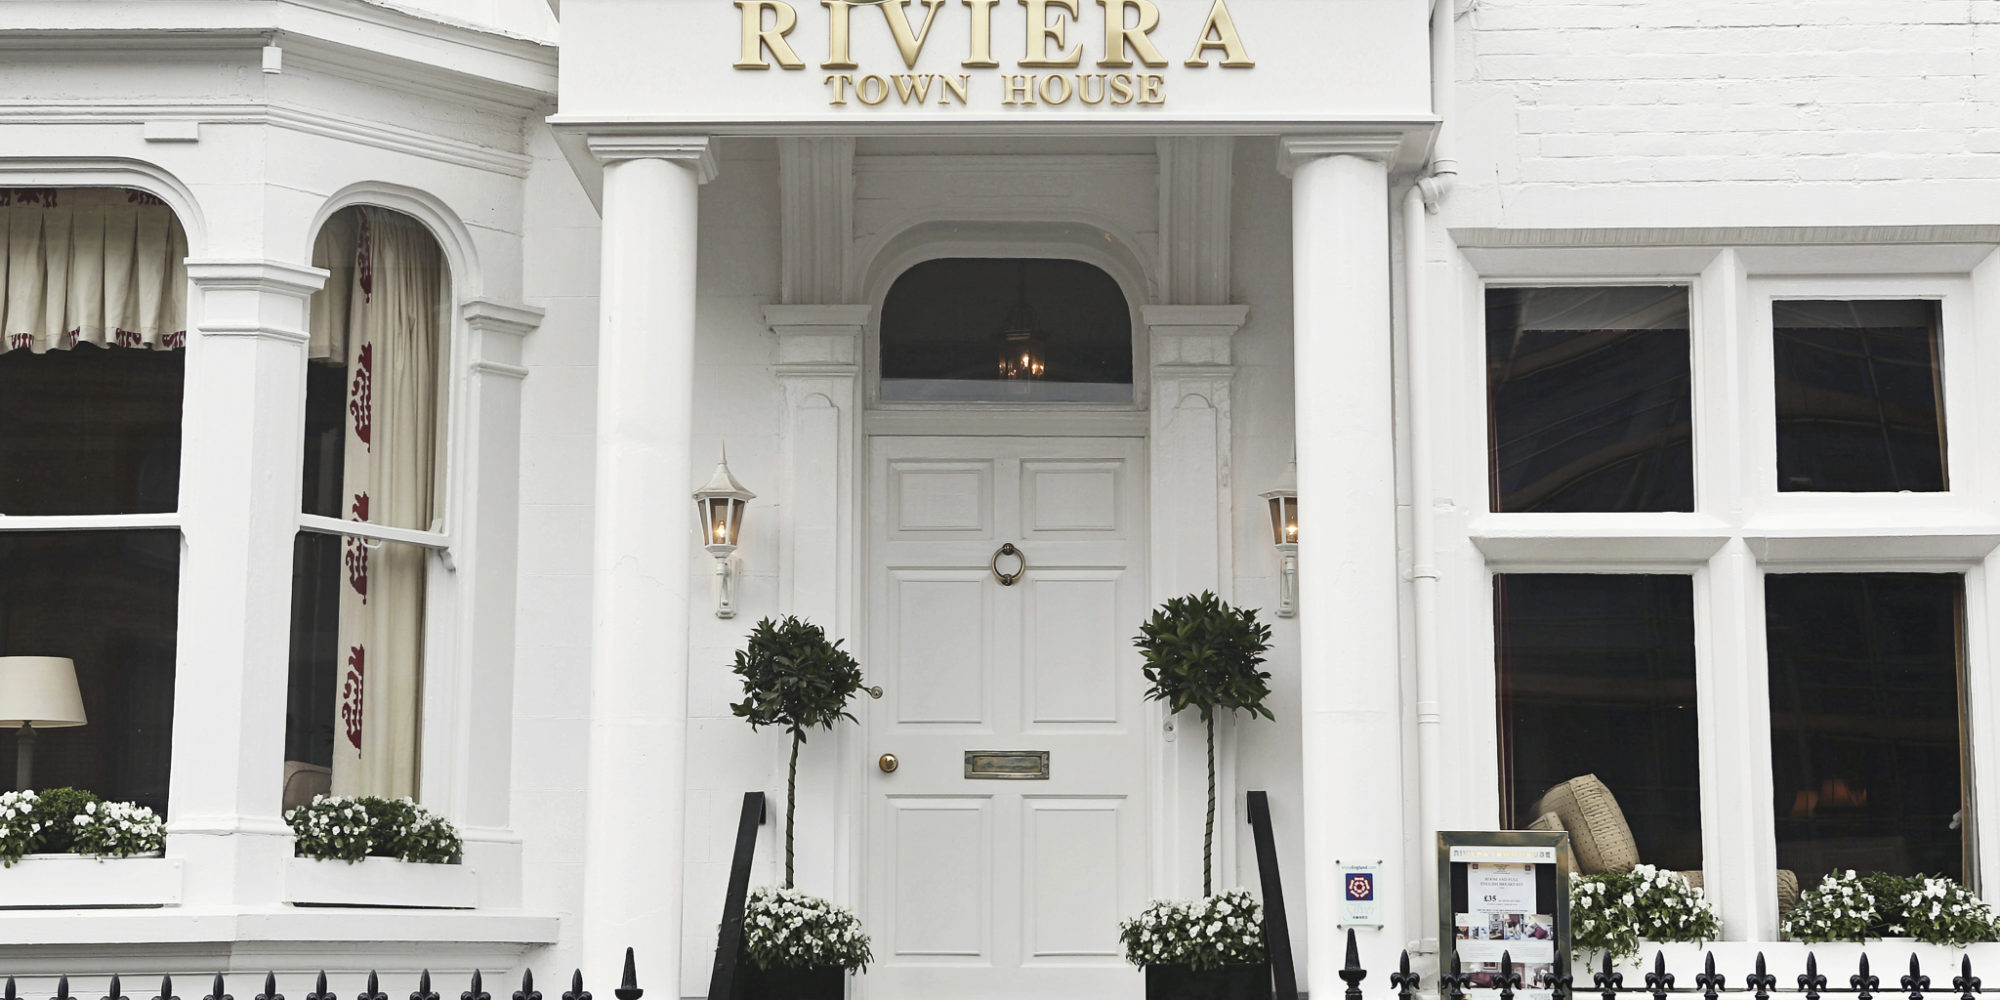 Riviera town house front